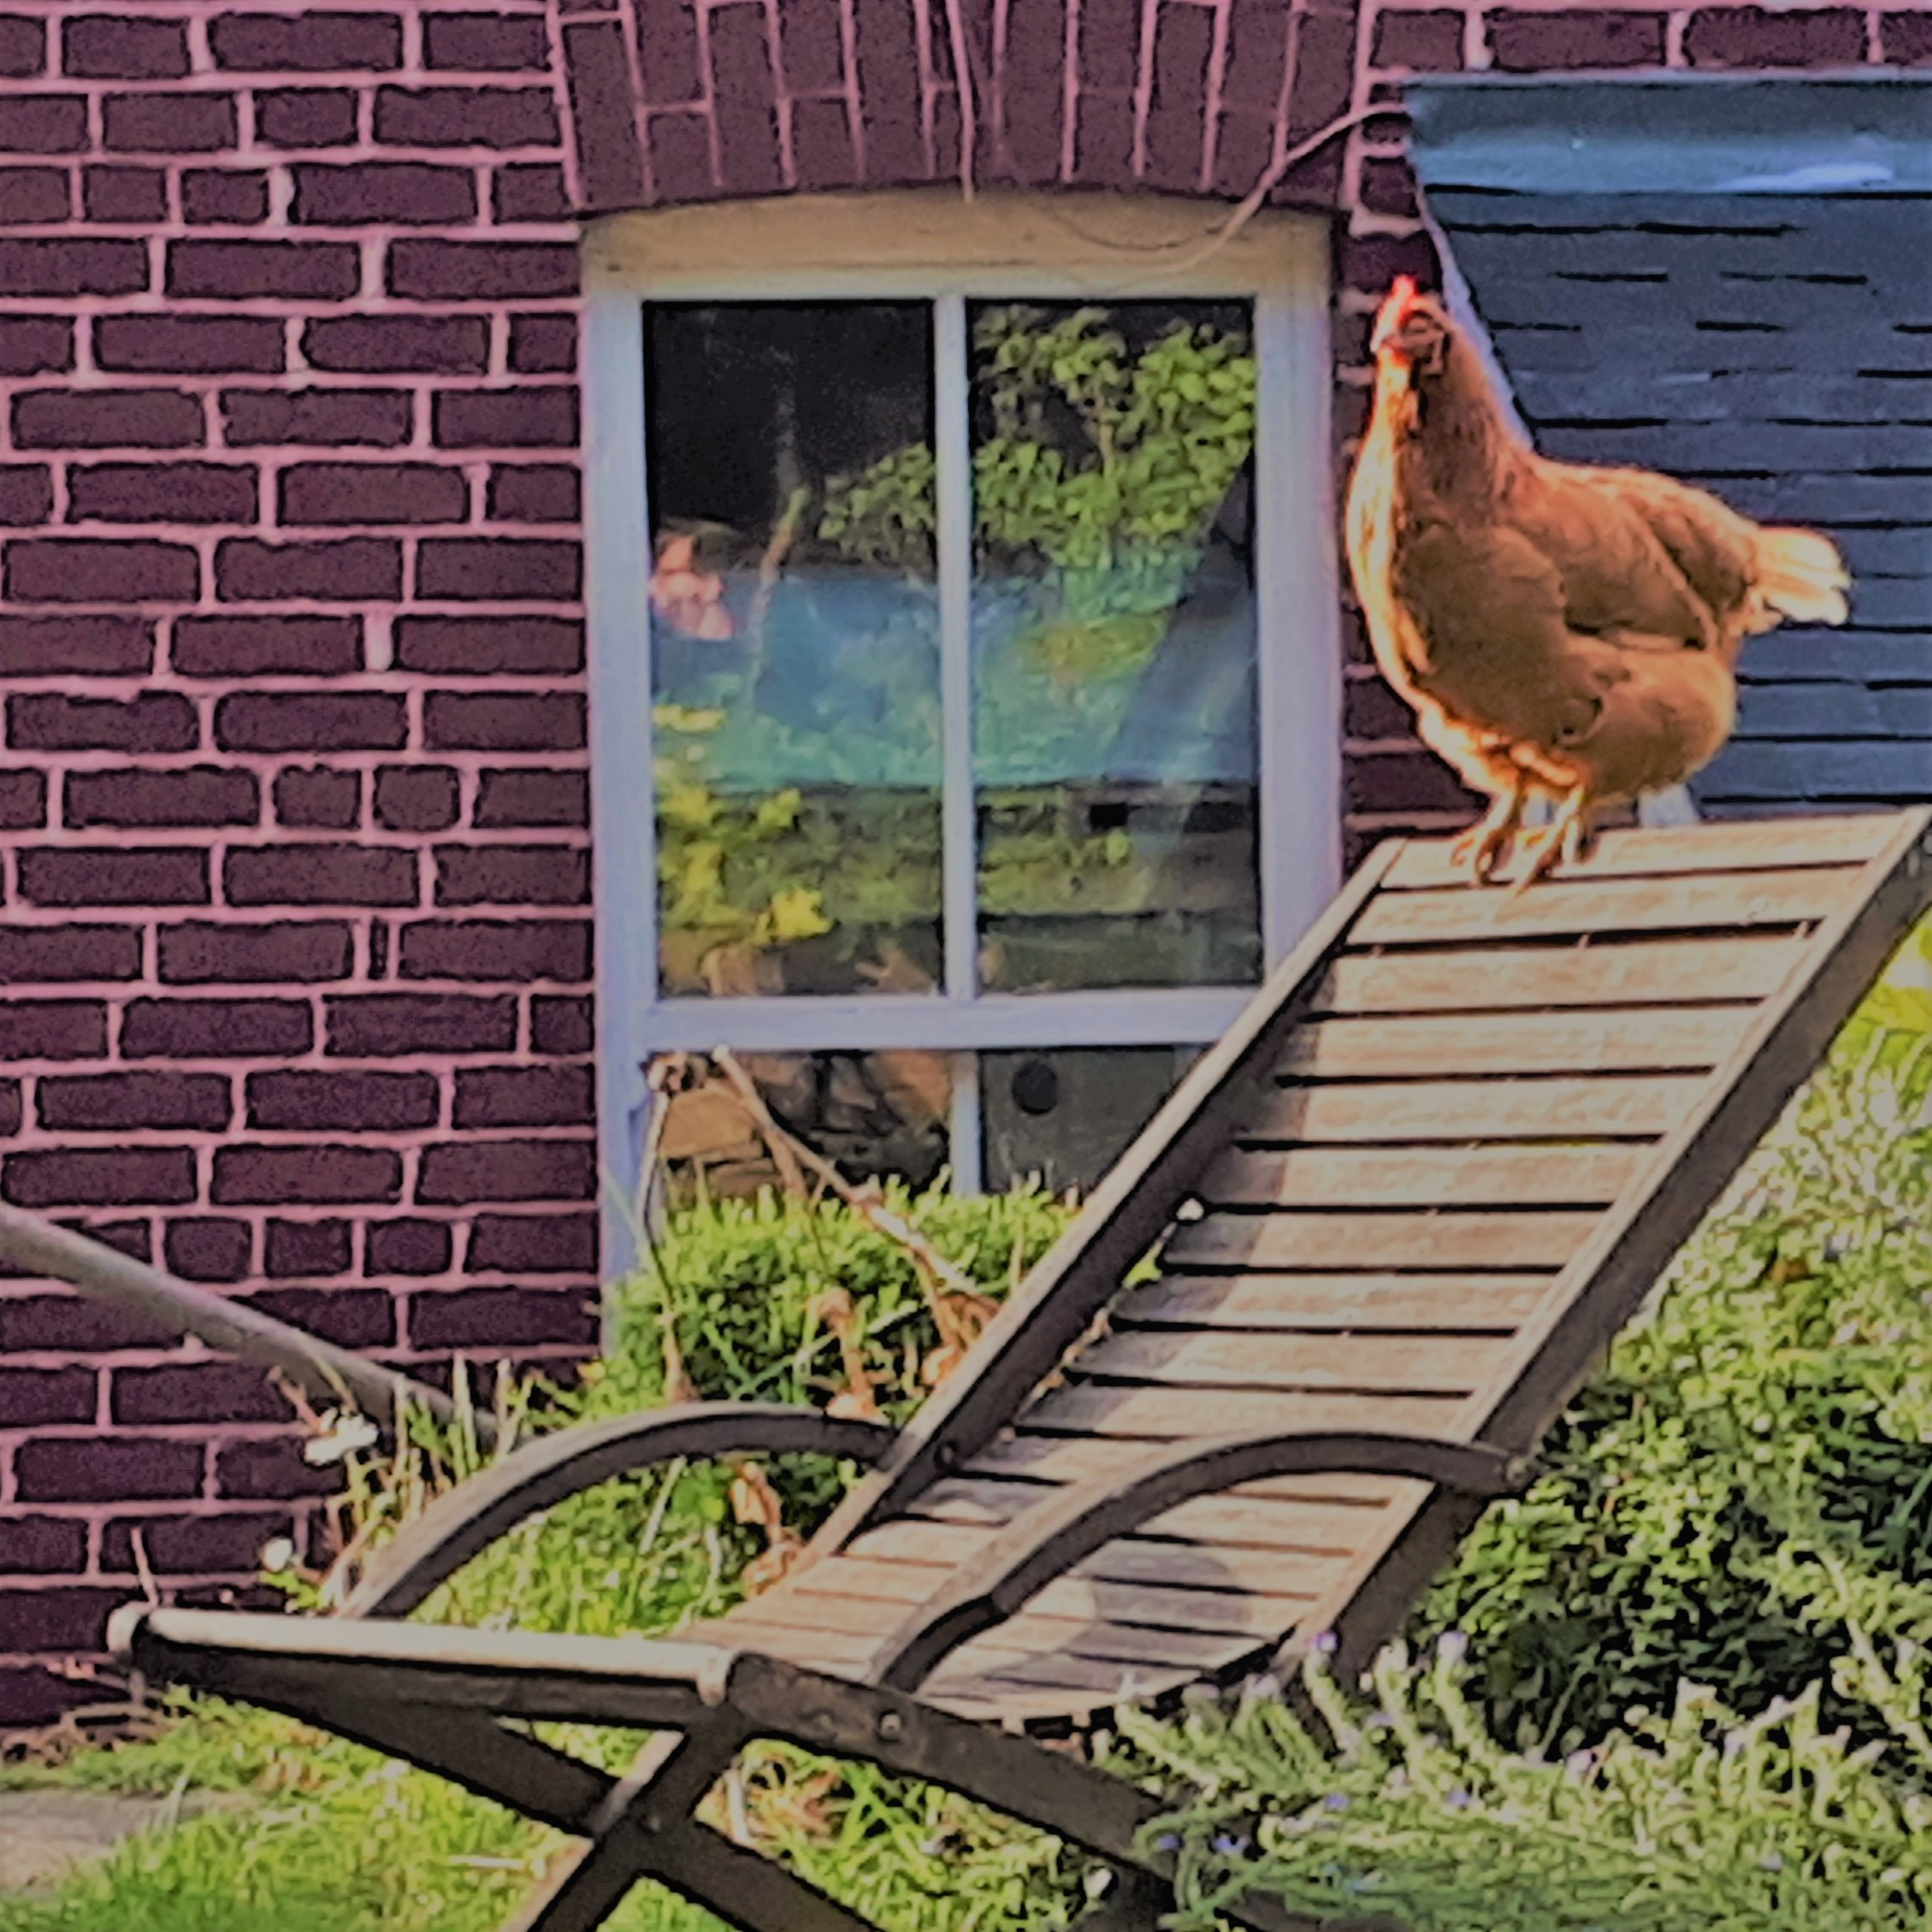 17. Chicken ruling the roost